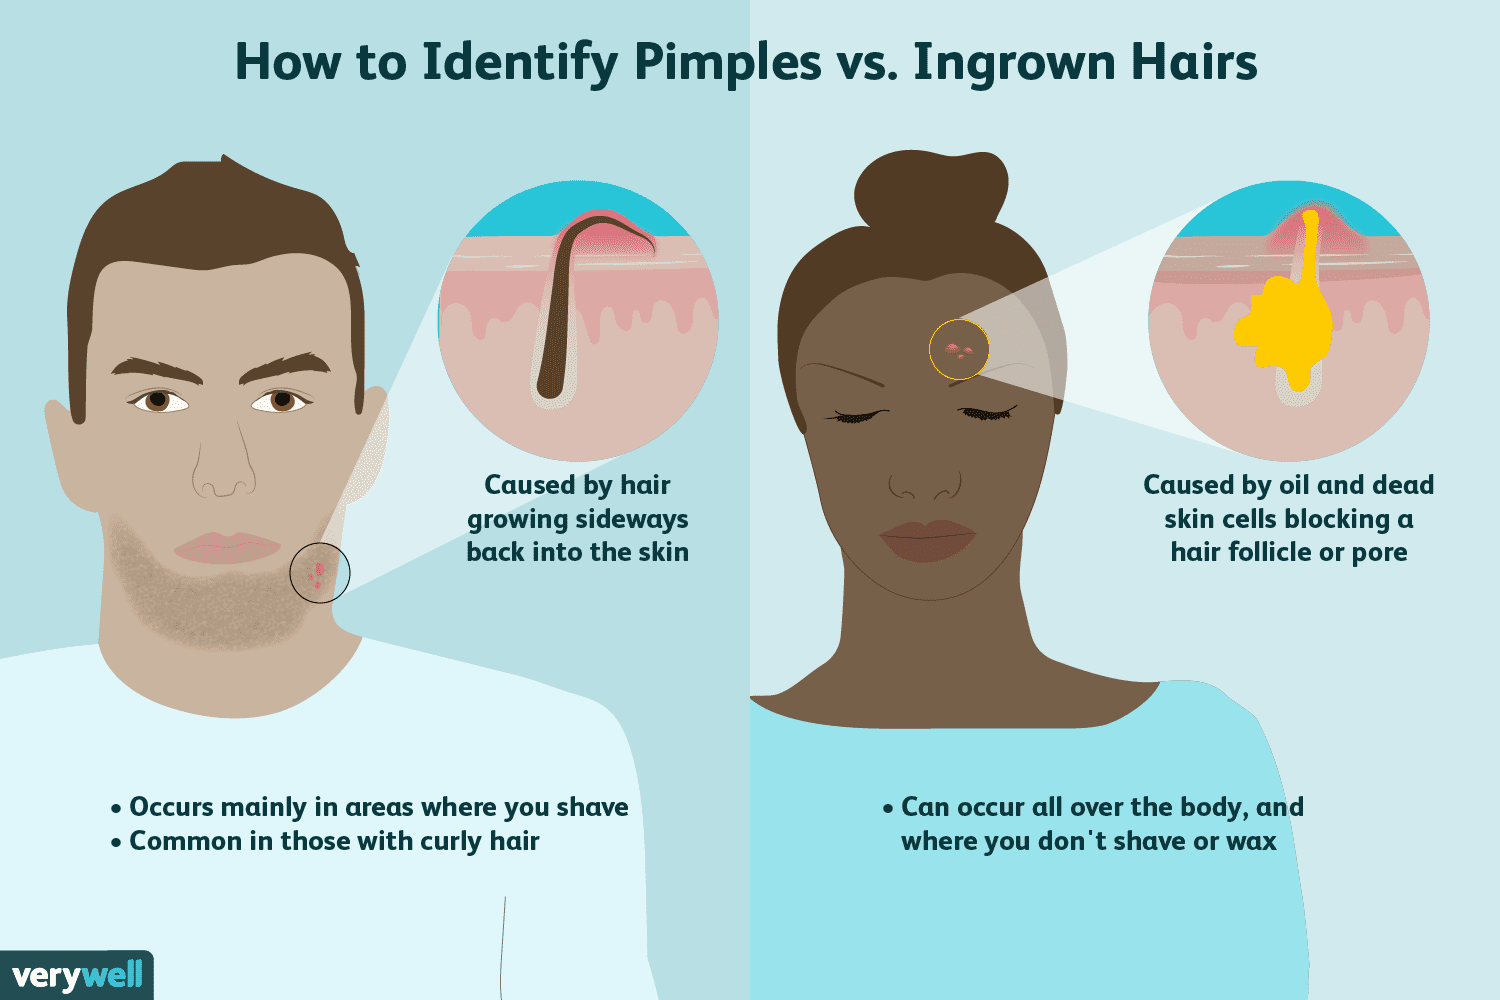 Difference Between a Pimple and an Ingrown Hair